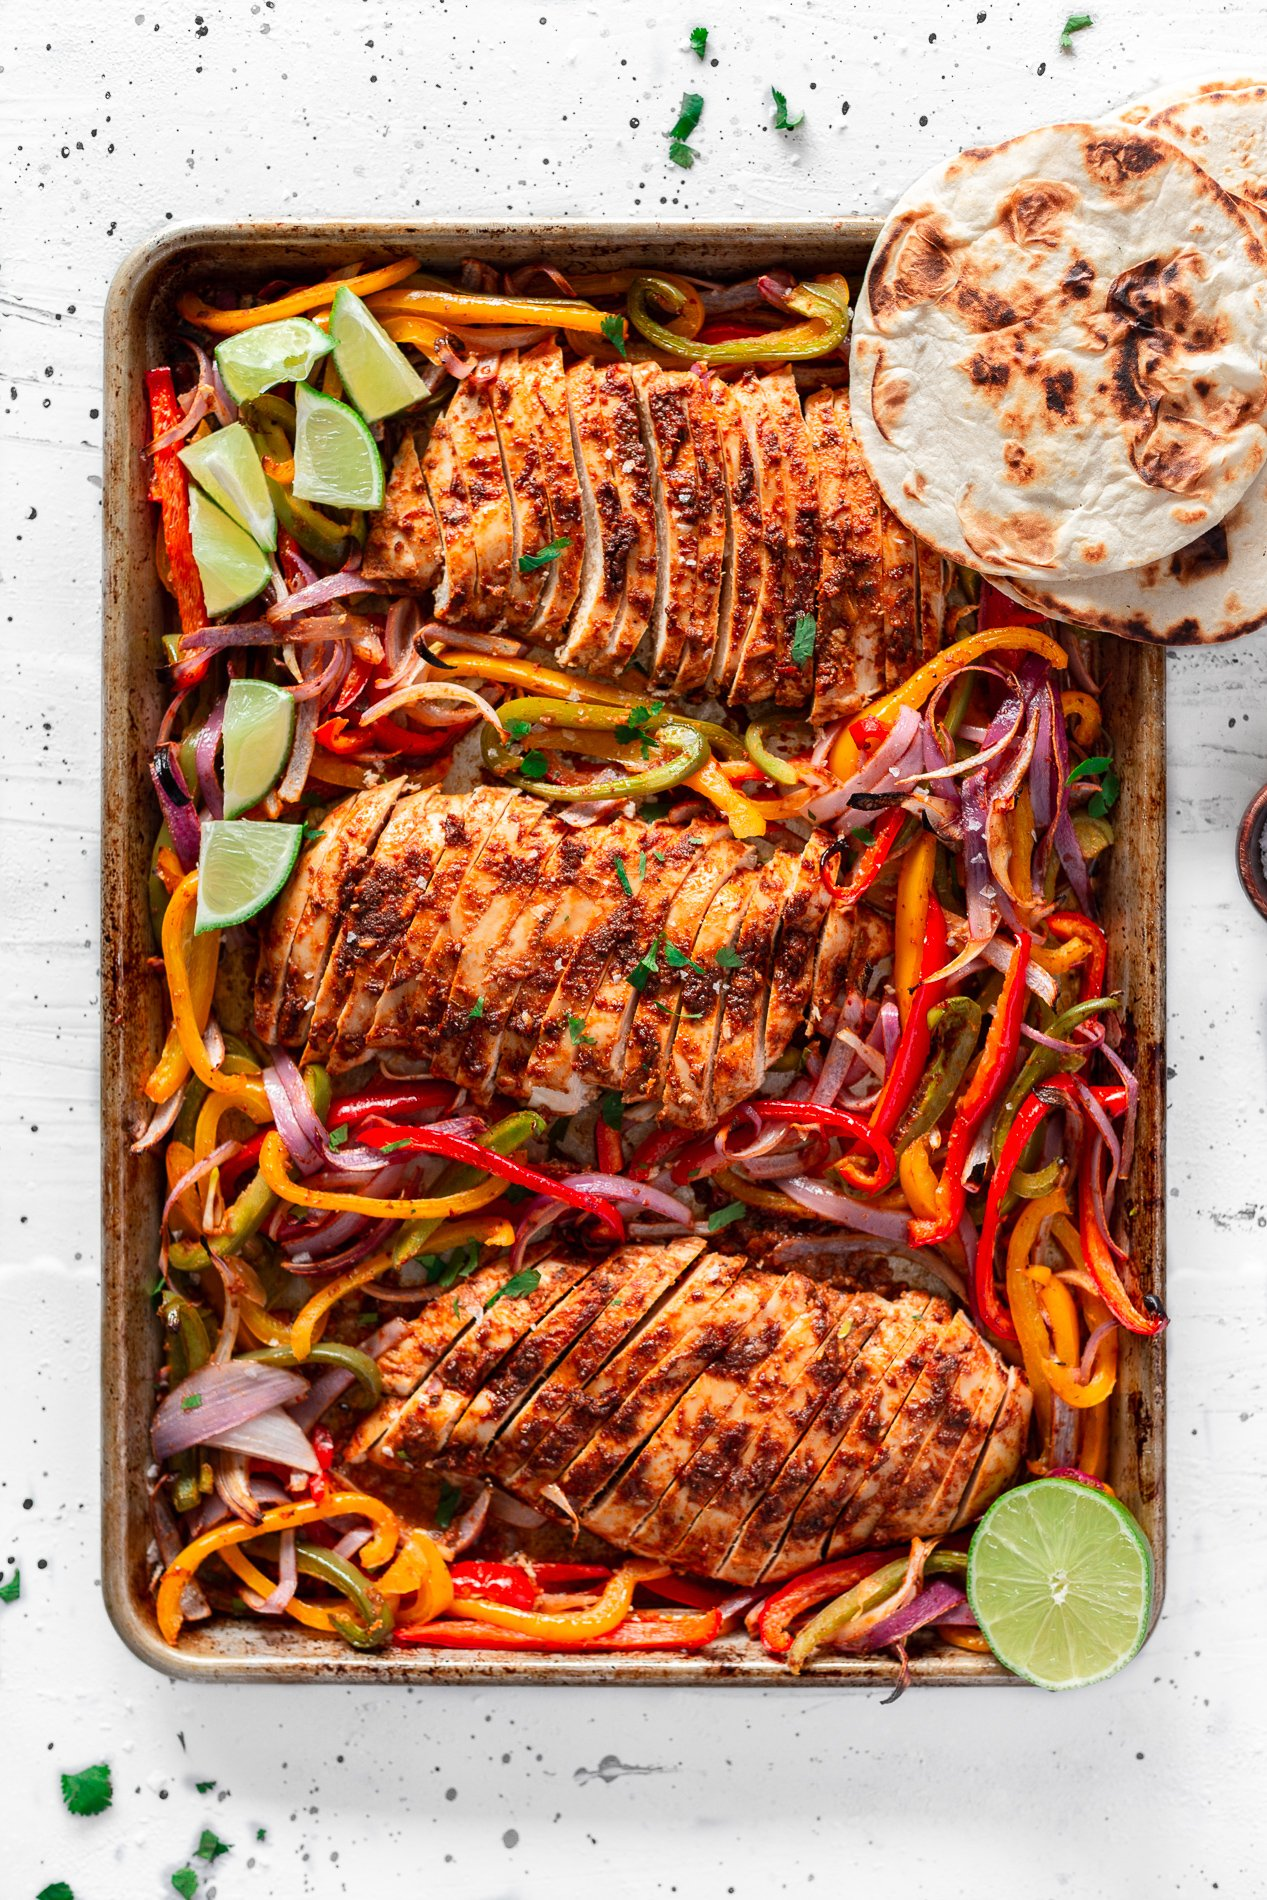 overhead view of chipotle sheet pan chicken fajitas after being cooked in the oven, with sliced chicken breast, toasted tortillas, and lime wedges